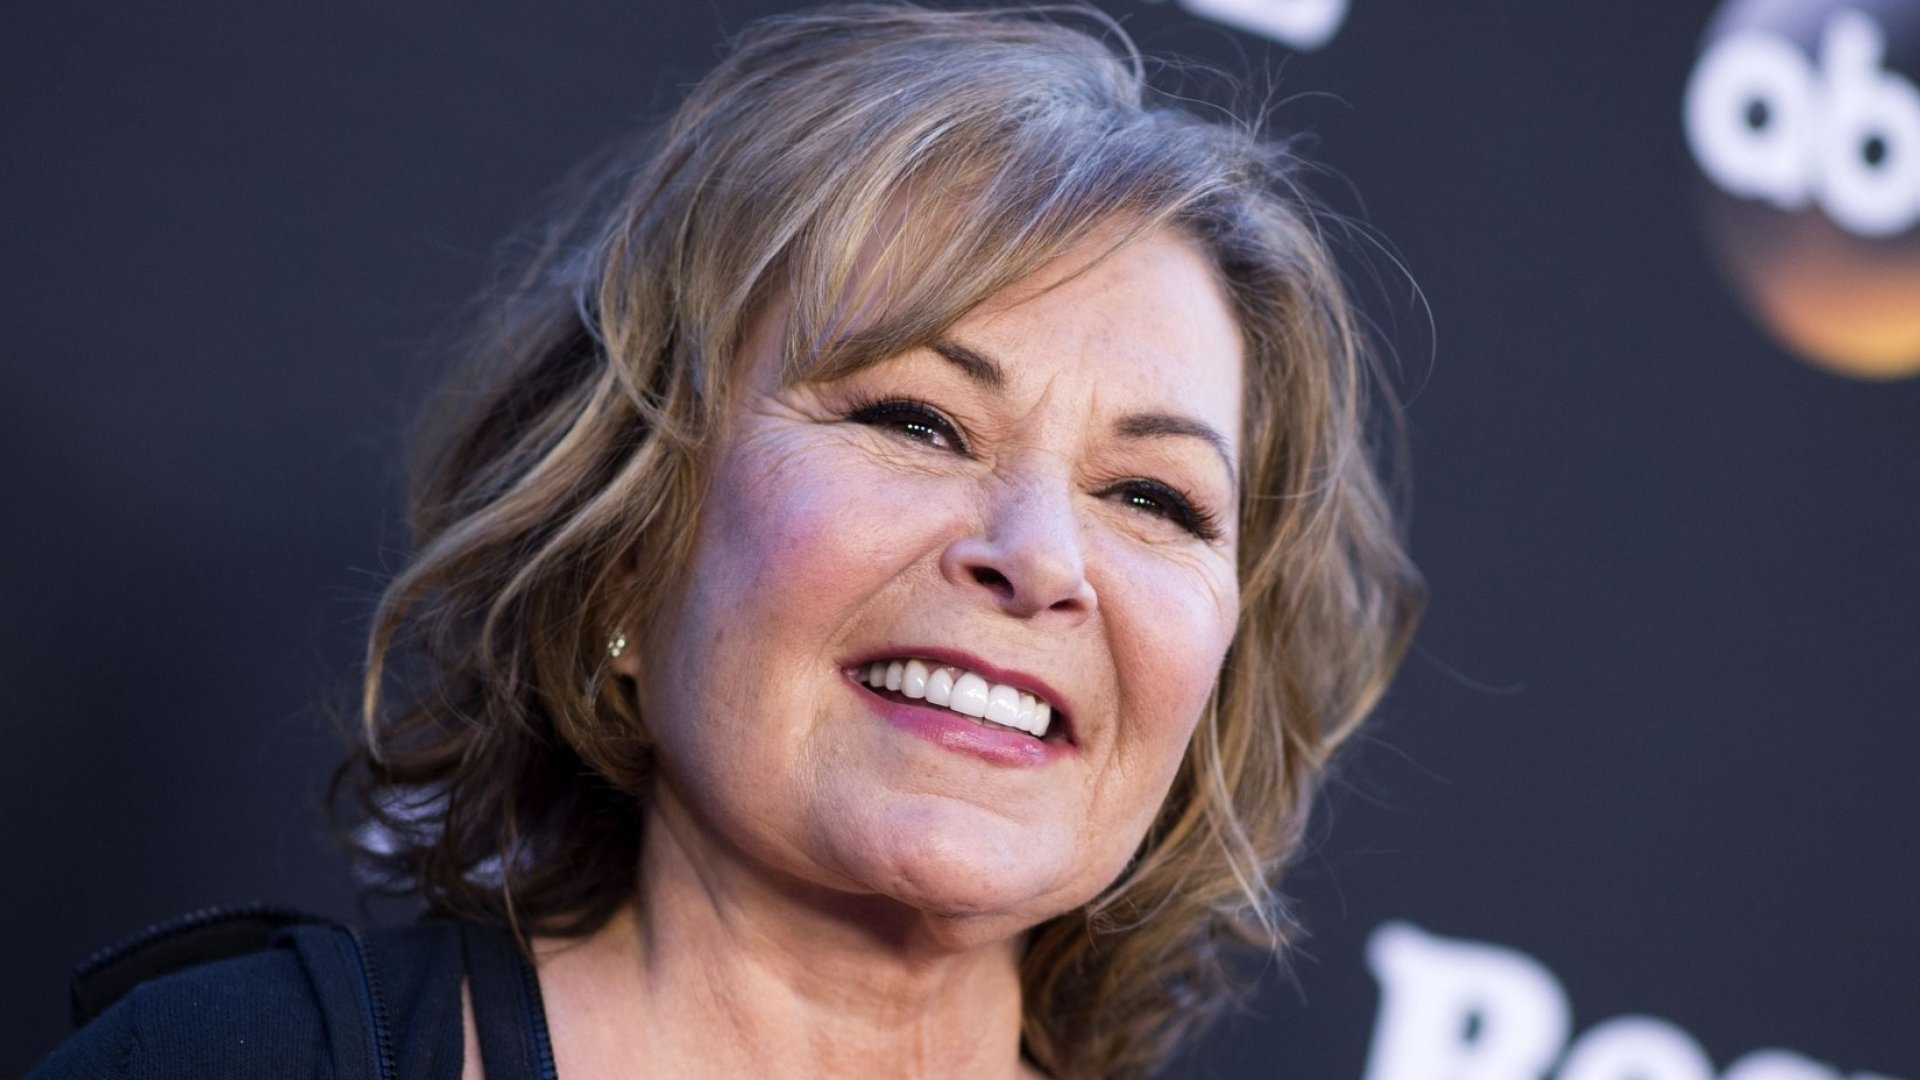 ABC Cancels Hit Series 'Roseanne' After Racist Twitter Rant.2 Important Lessons for Every Business